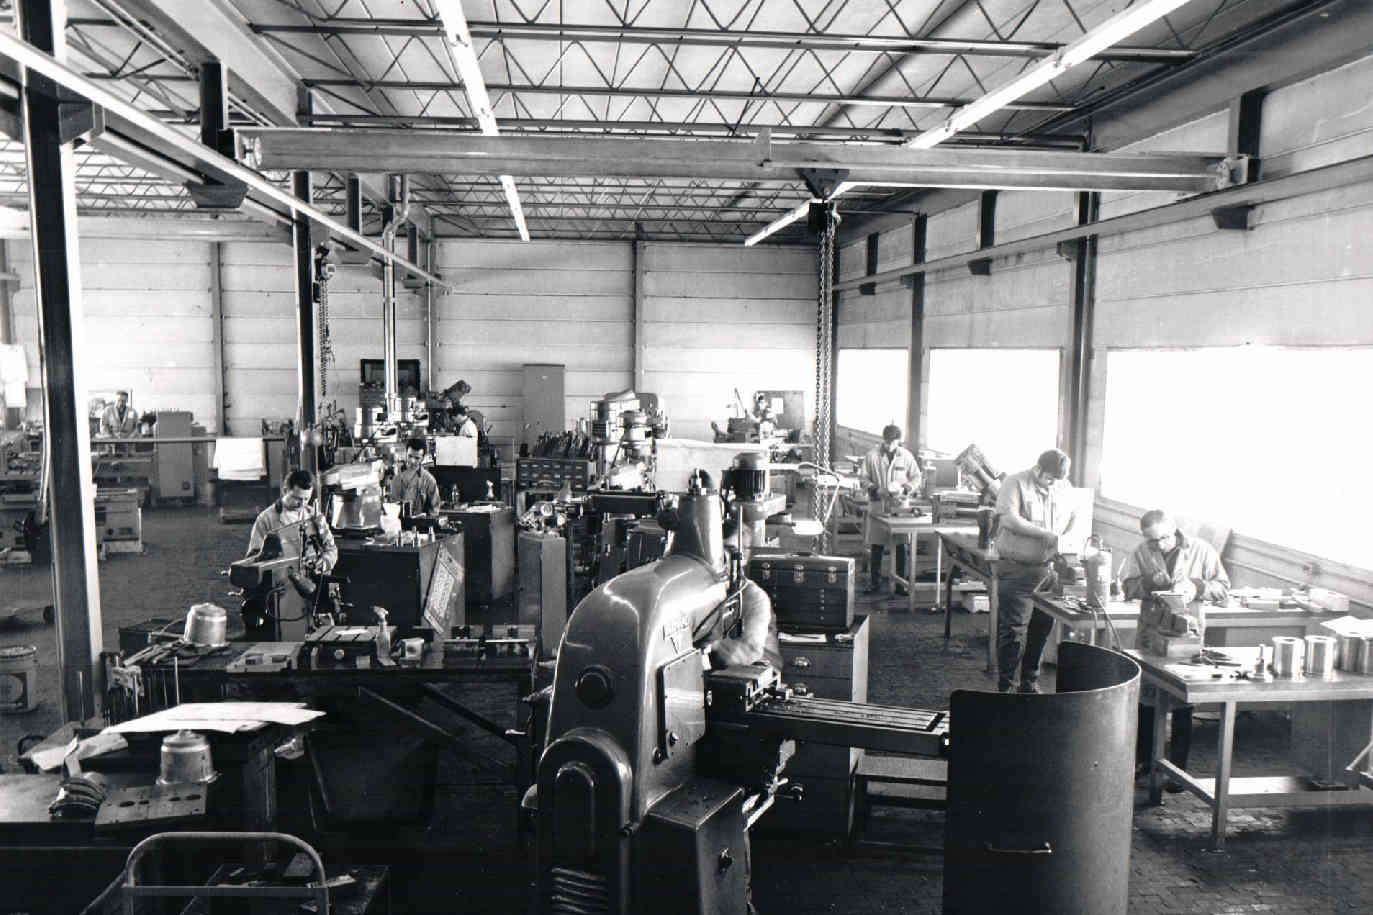 K & K Tools shop in its early days